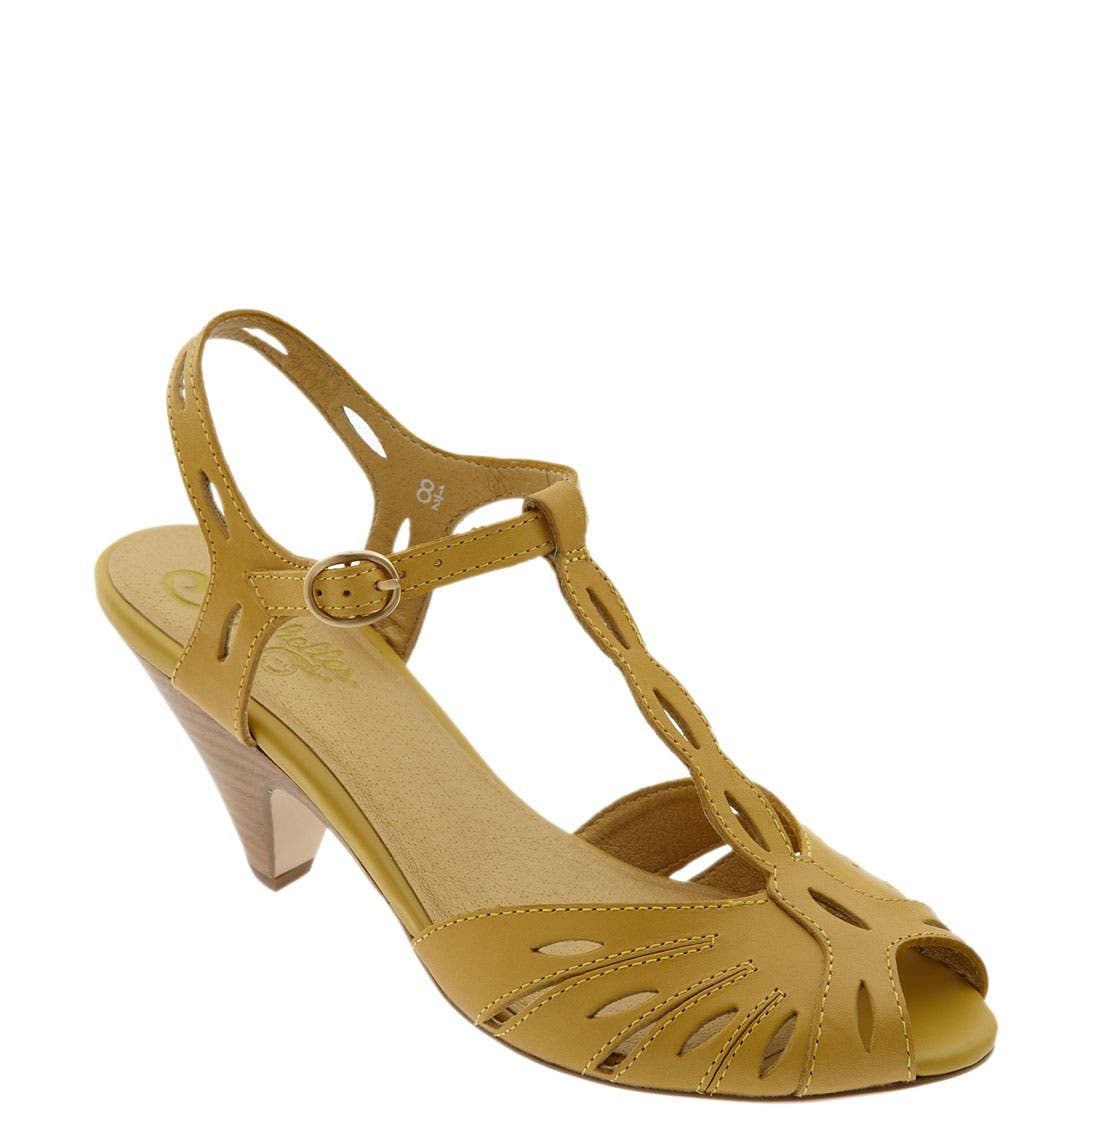 Alternate Image 1 Selected - Seychelles 'Trip the Light' T-Strap Sandal